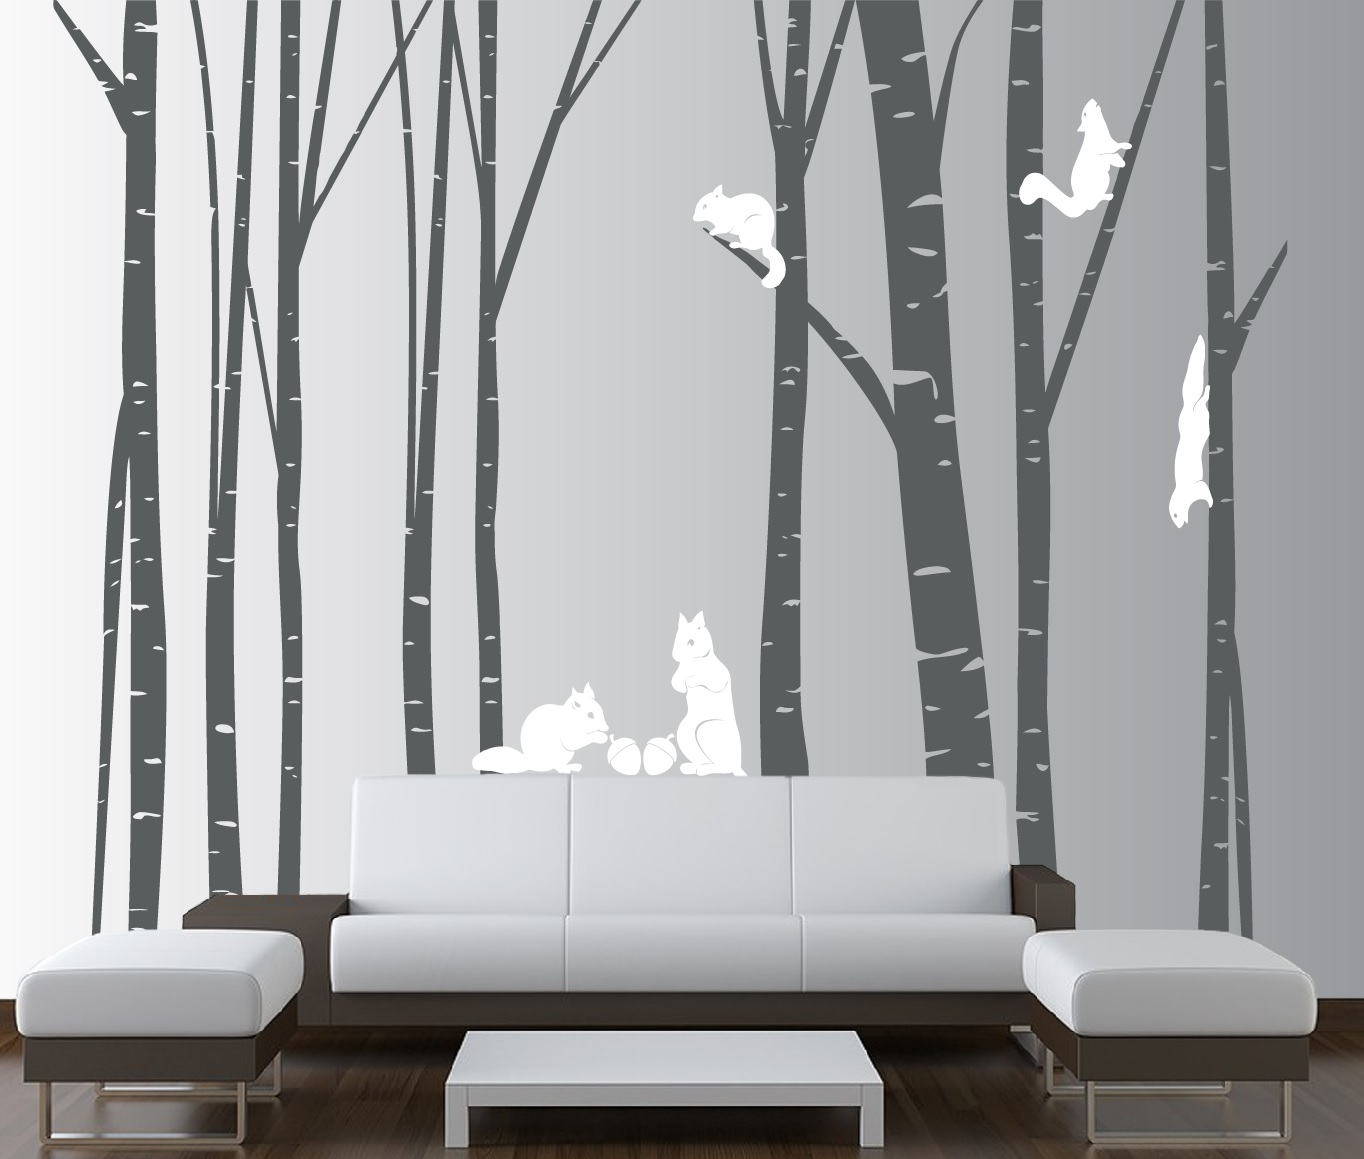 birch-tree-wall-decal-squirells-custom-1230.jpg